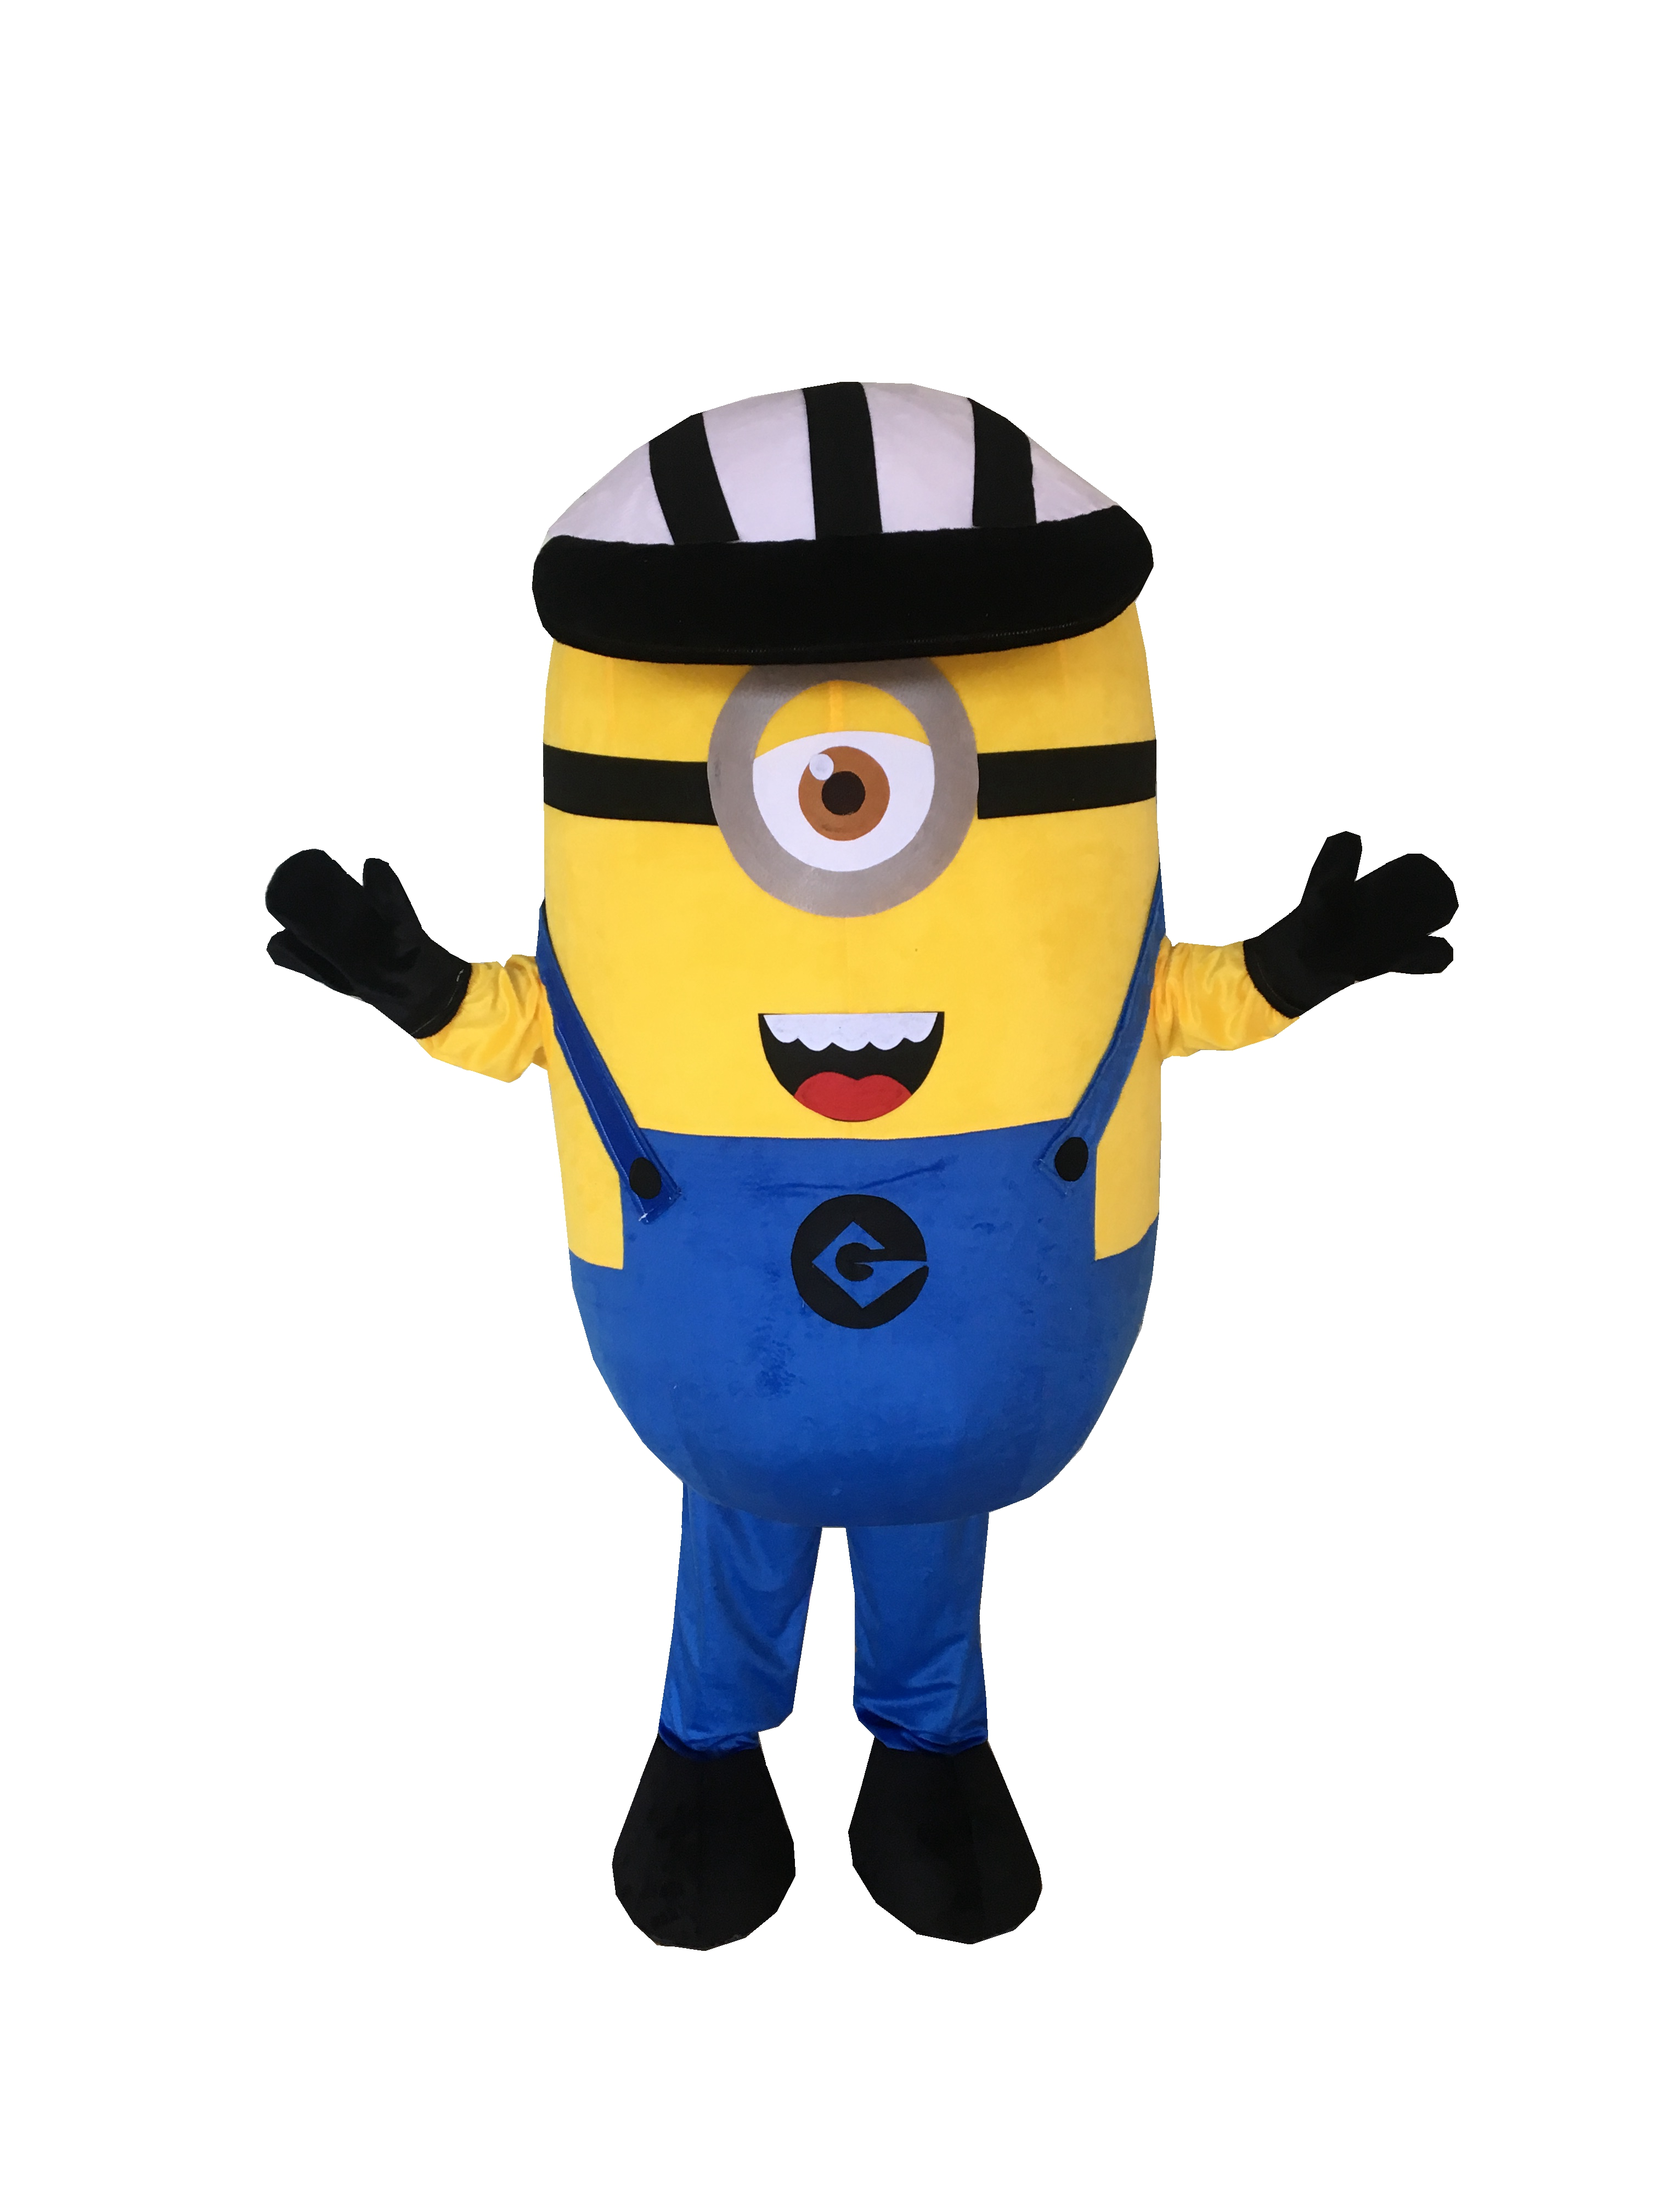 Cosplay Costumes Made Cartoon Movie Mean Minion Mascot Costume with Smile for Adult